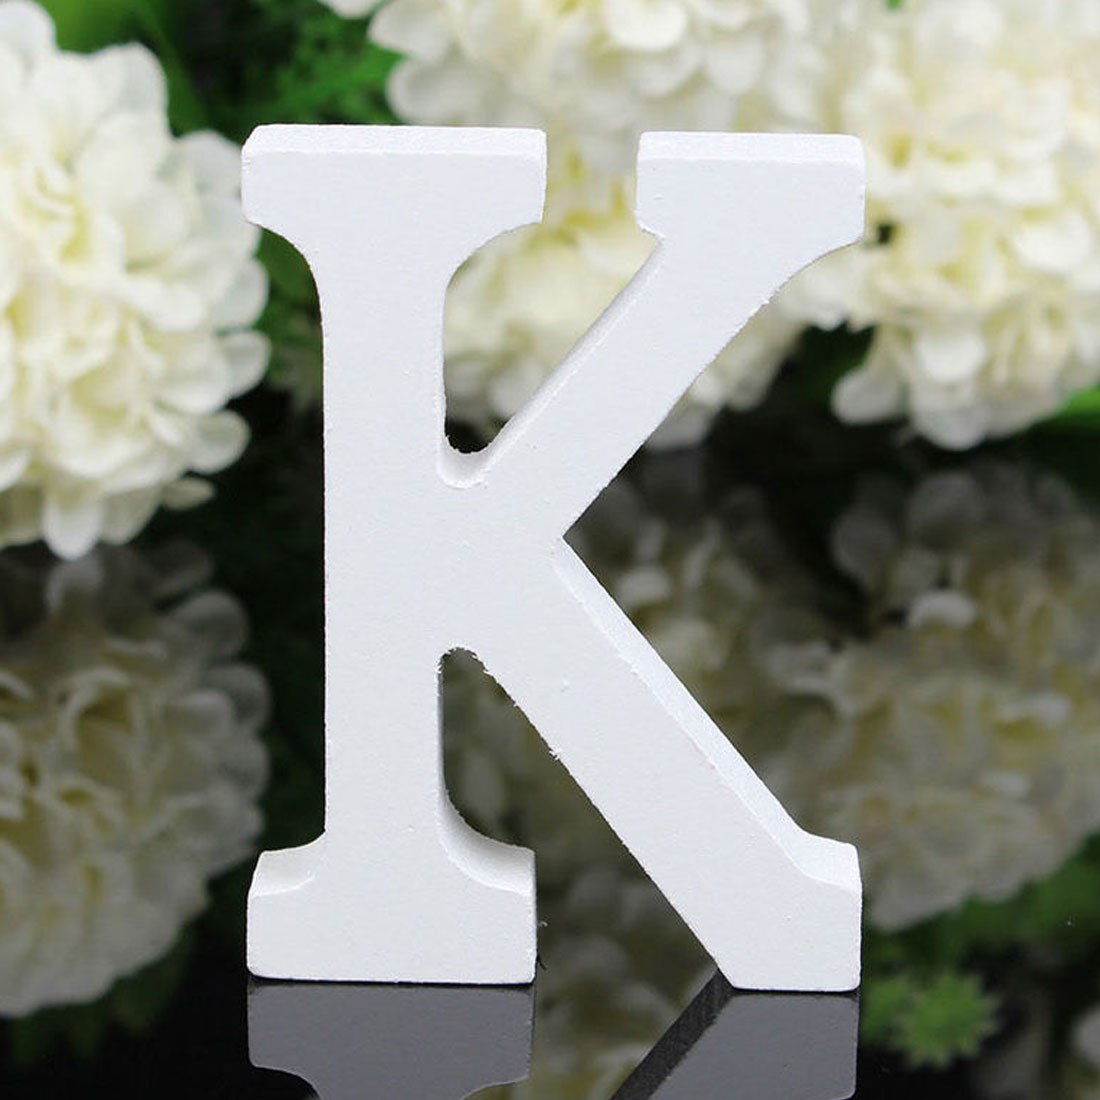 Wedding Birthday Party Plywood Decoration English K Letter Alphabet DIY Wall - image 1 of 4